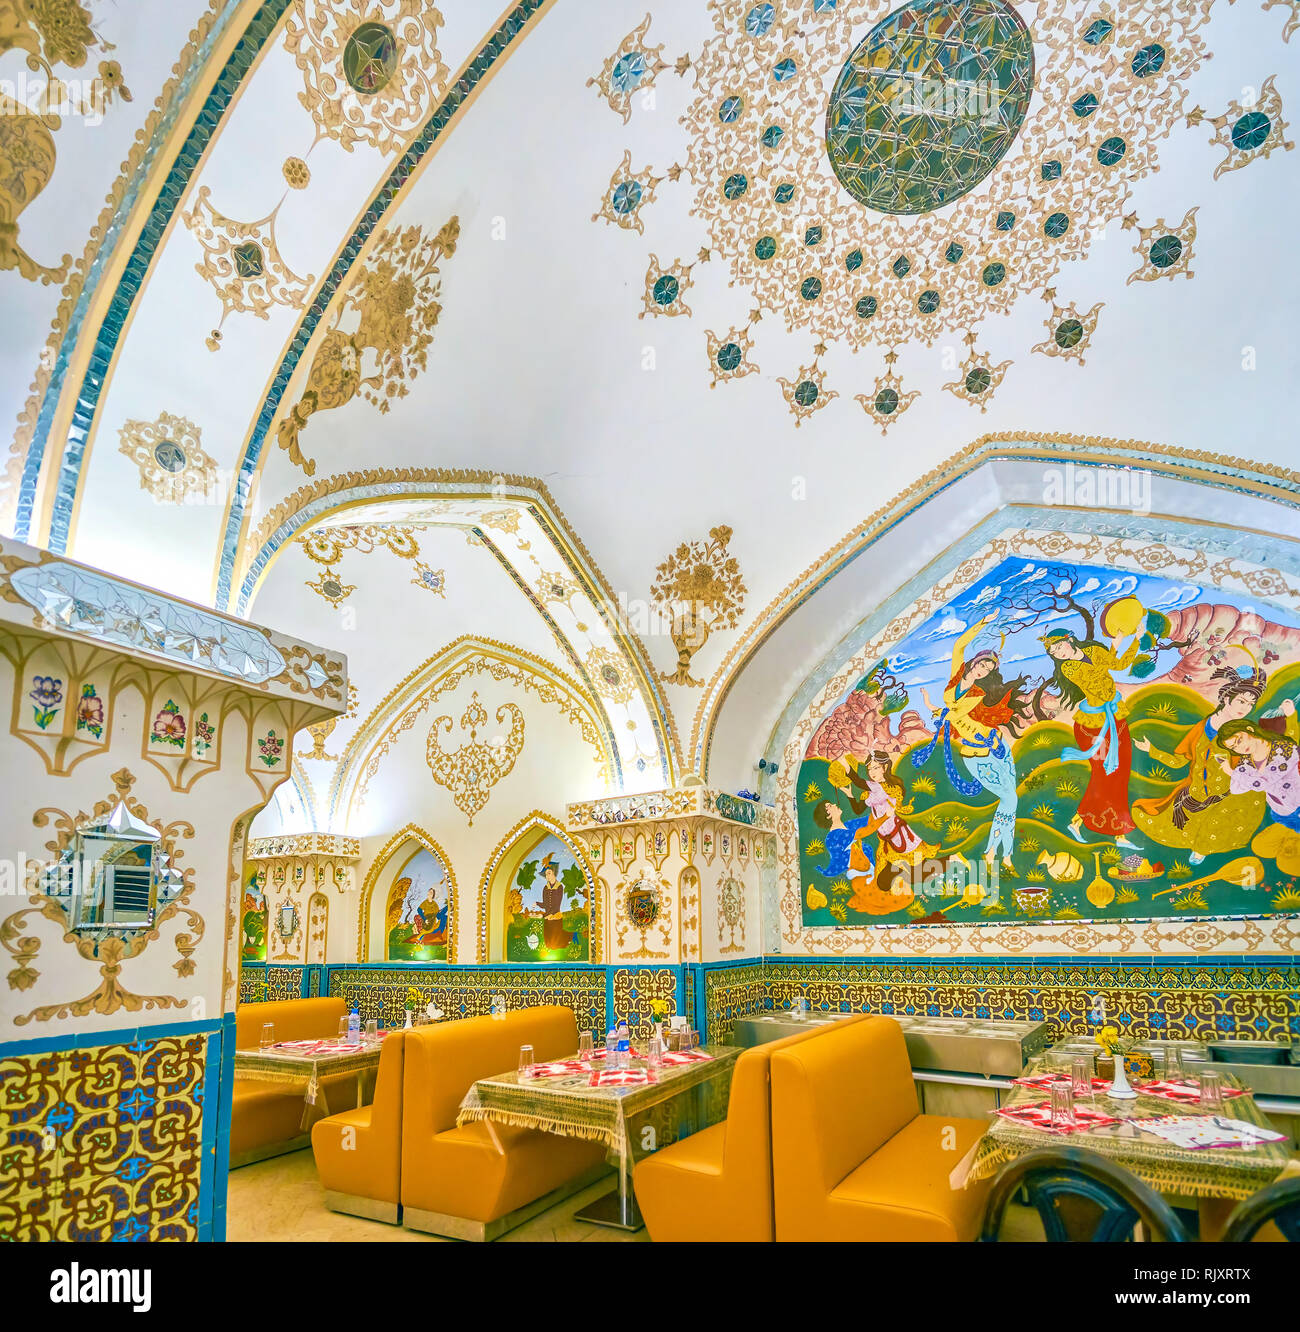 ISFAHAN, IRAN - OCTOBER 19, 2017: The beautifully decorated interior of Baastan restaurant in combination of mirrorwork, painted patterns and pictures Stock Photo